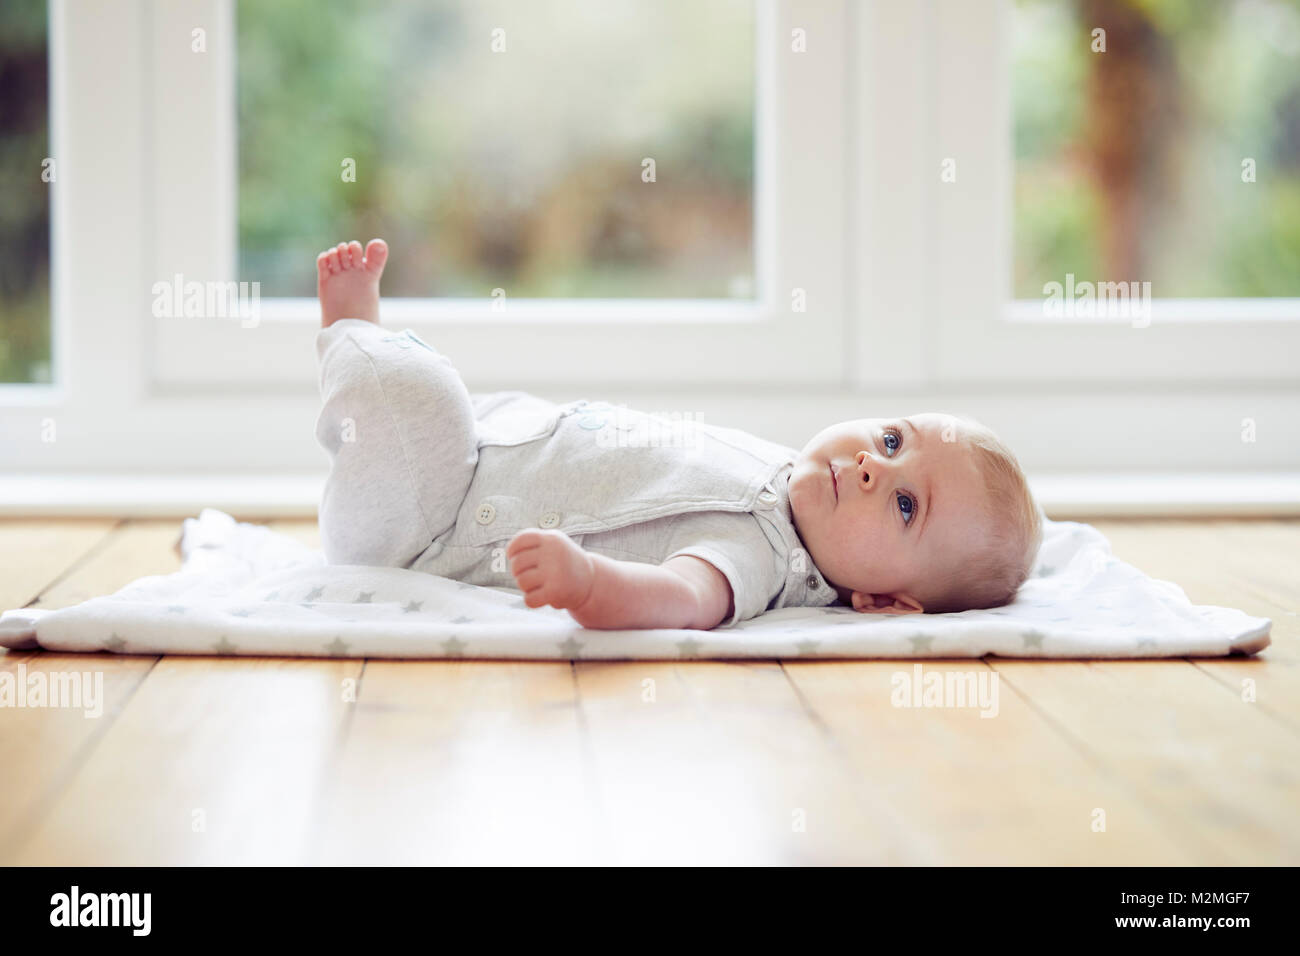 Baby laid on a matt - Stock Image